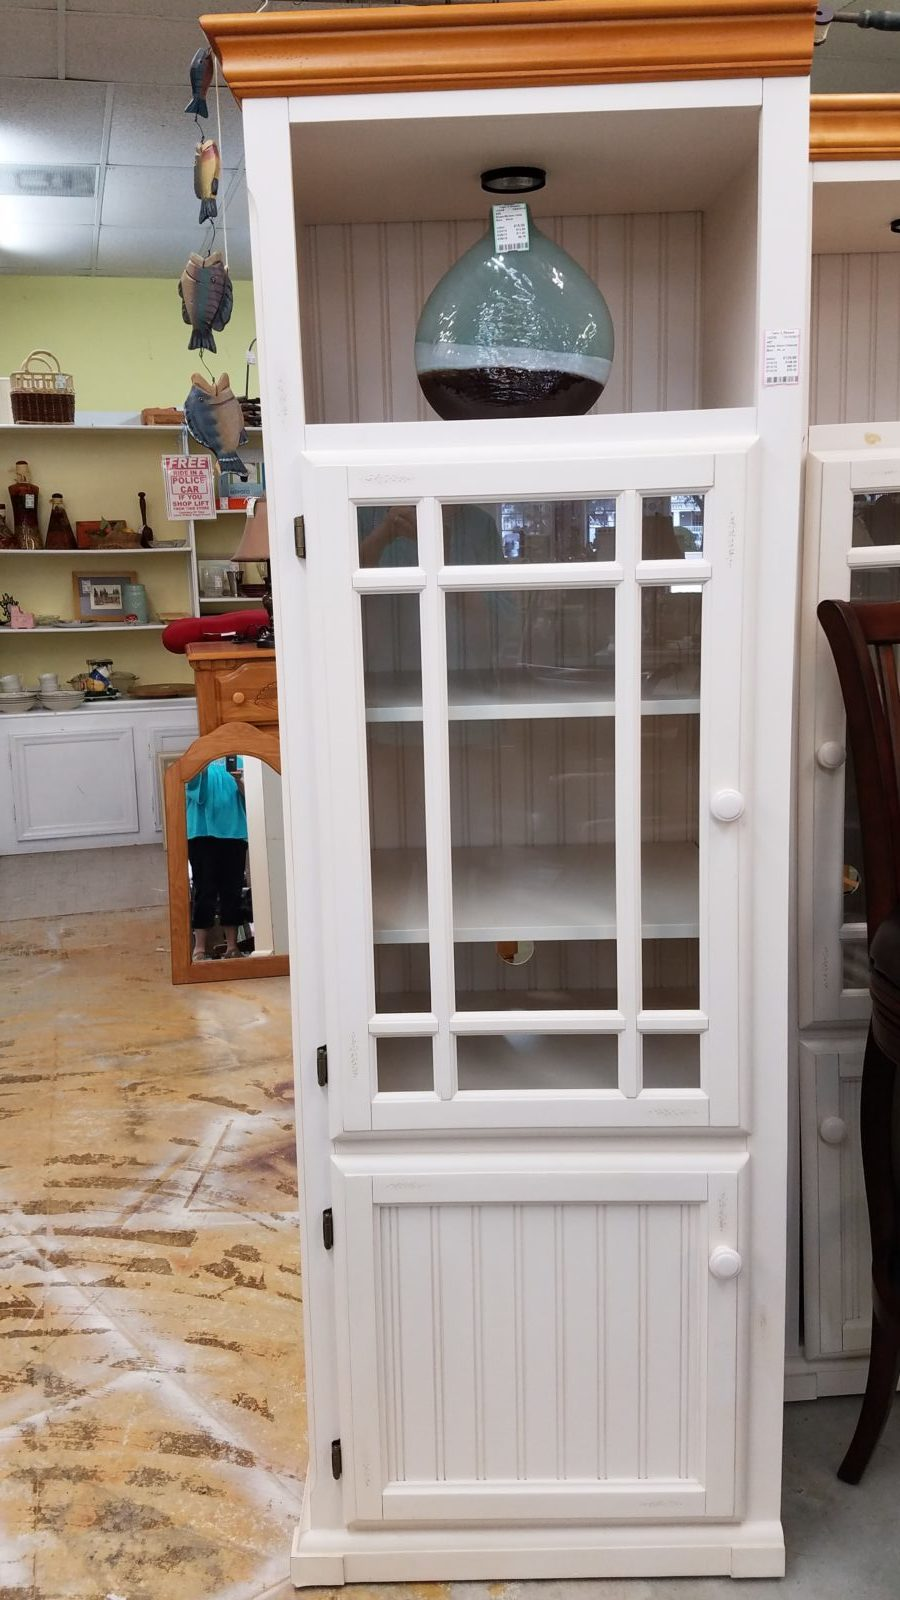 White tower cabinet • We have 2 for sale separately